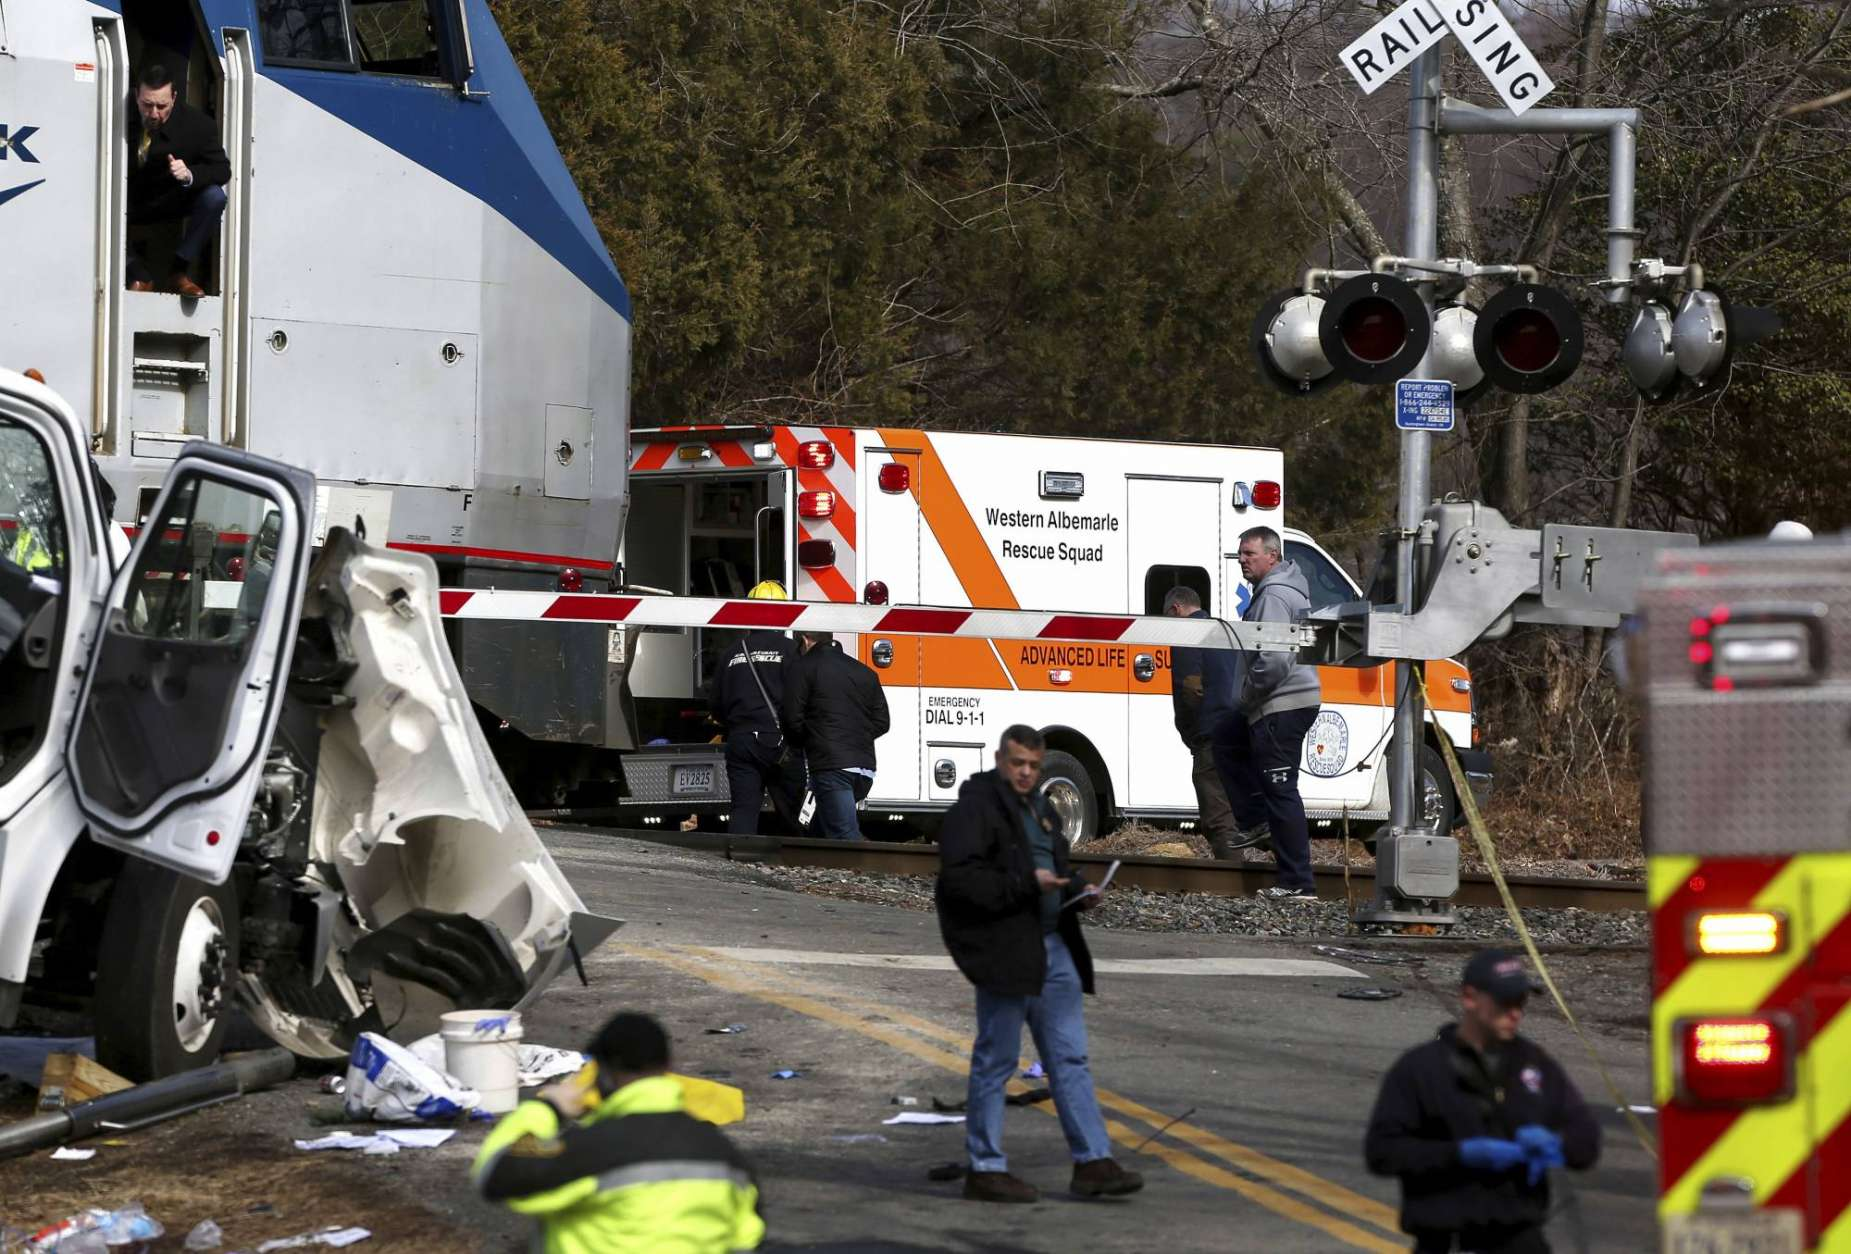 The railroad crossing arm is seen lowered next to the scene of where an Amtrak train carrying multiple Republican lawmakers crashed into a garbage truck  in Crozet, Va., on Wednesday, Jan. 31, 2018.  A chartered train carrying dozens of GOP lawmakers to a Republican policy retreat in West Virginia struck a garbage truck in a rural Virginia town Wednesday.  (Zack Wajsgras/The Daily Progress via AP)